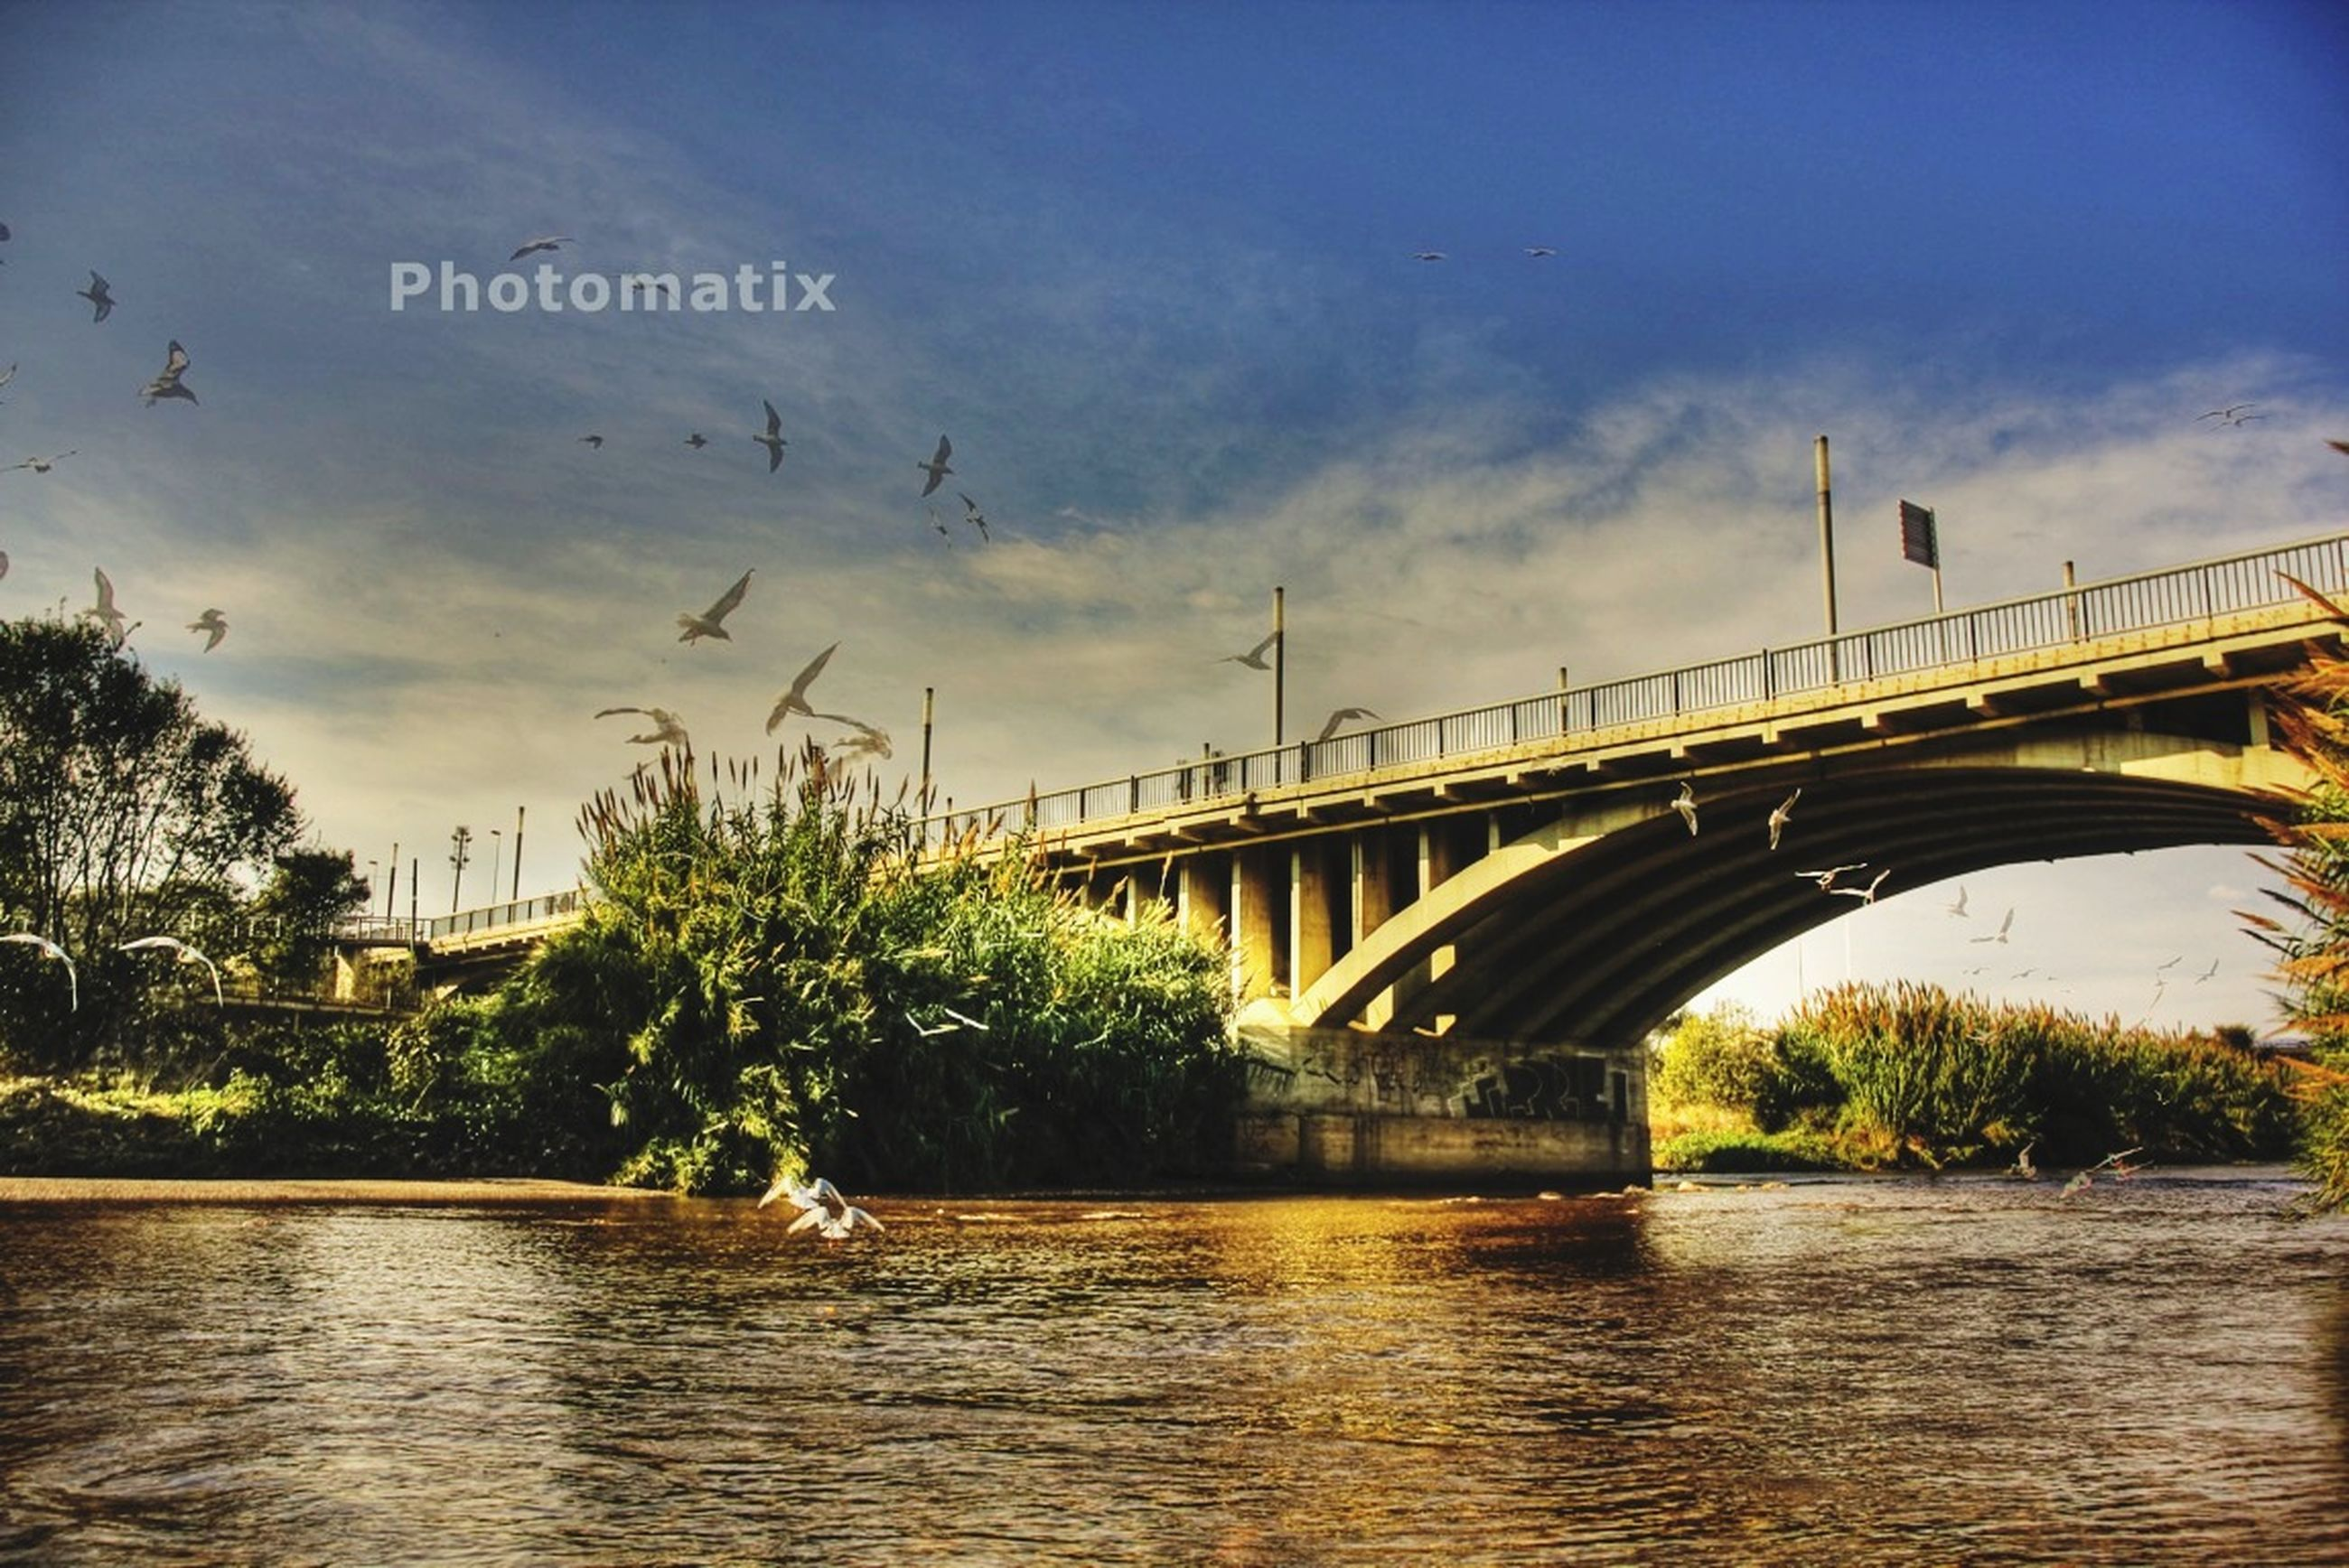 built structure, water, architecture, bridge - man made structure, connection, sky, bird, river, bridge, waterfront, tree, animal themes, cloud - sky, animals in the wild, wildlife, nature, building exterior, lake, day, outdoors